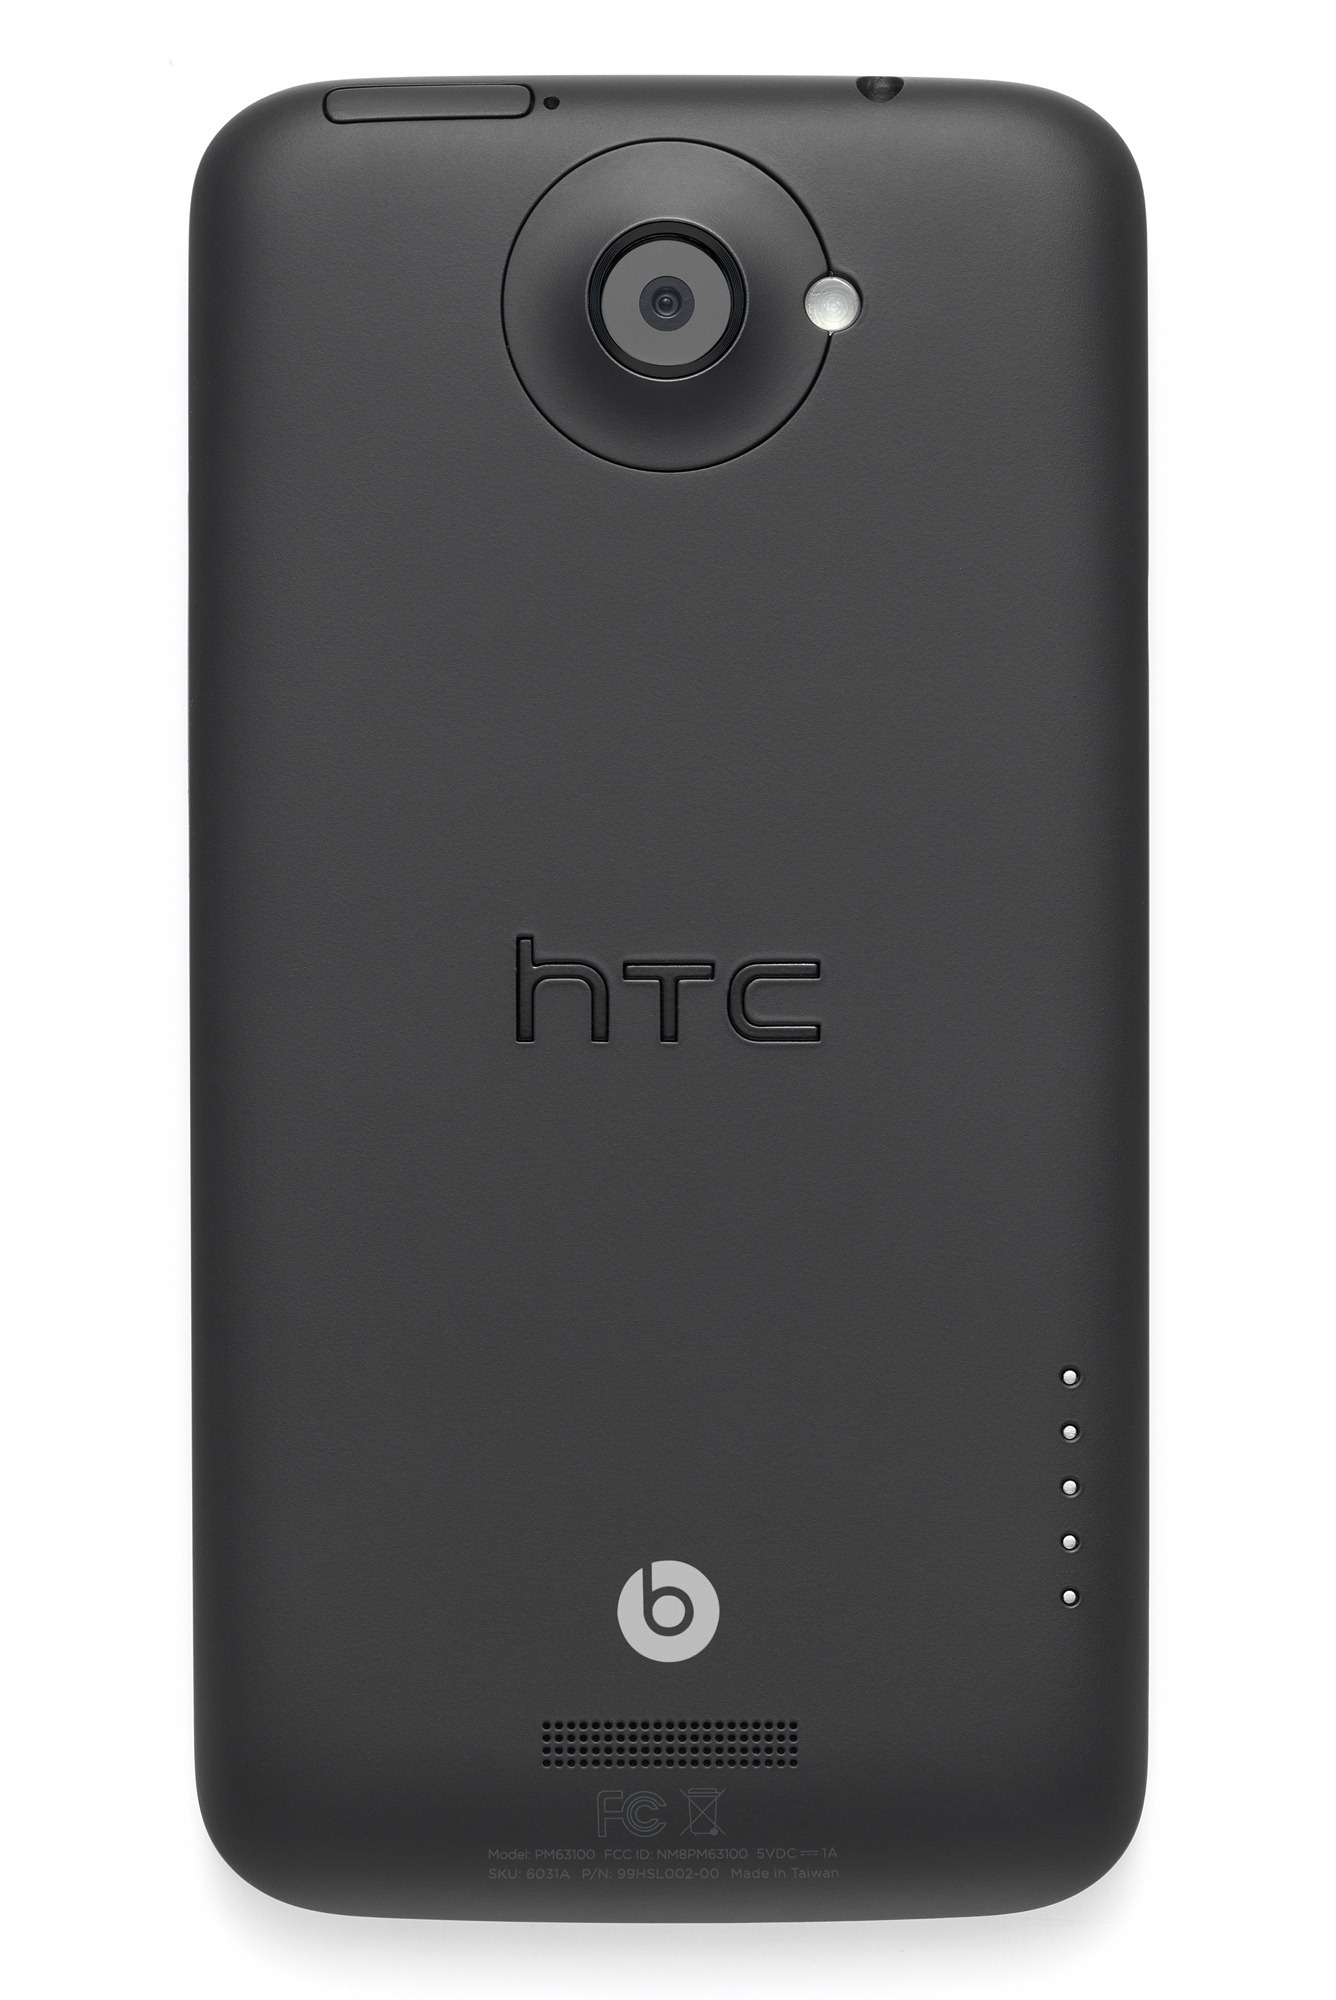 HTC one X 9-soon in Europe Available [update]